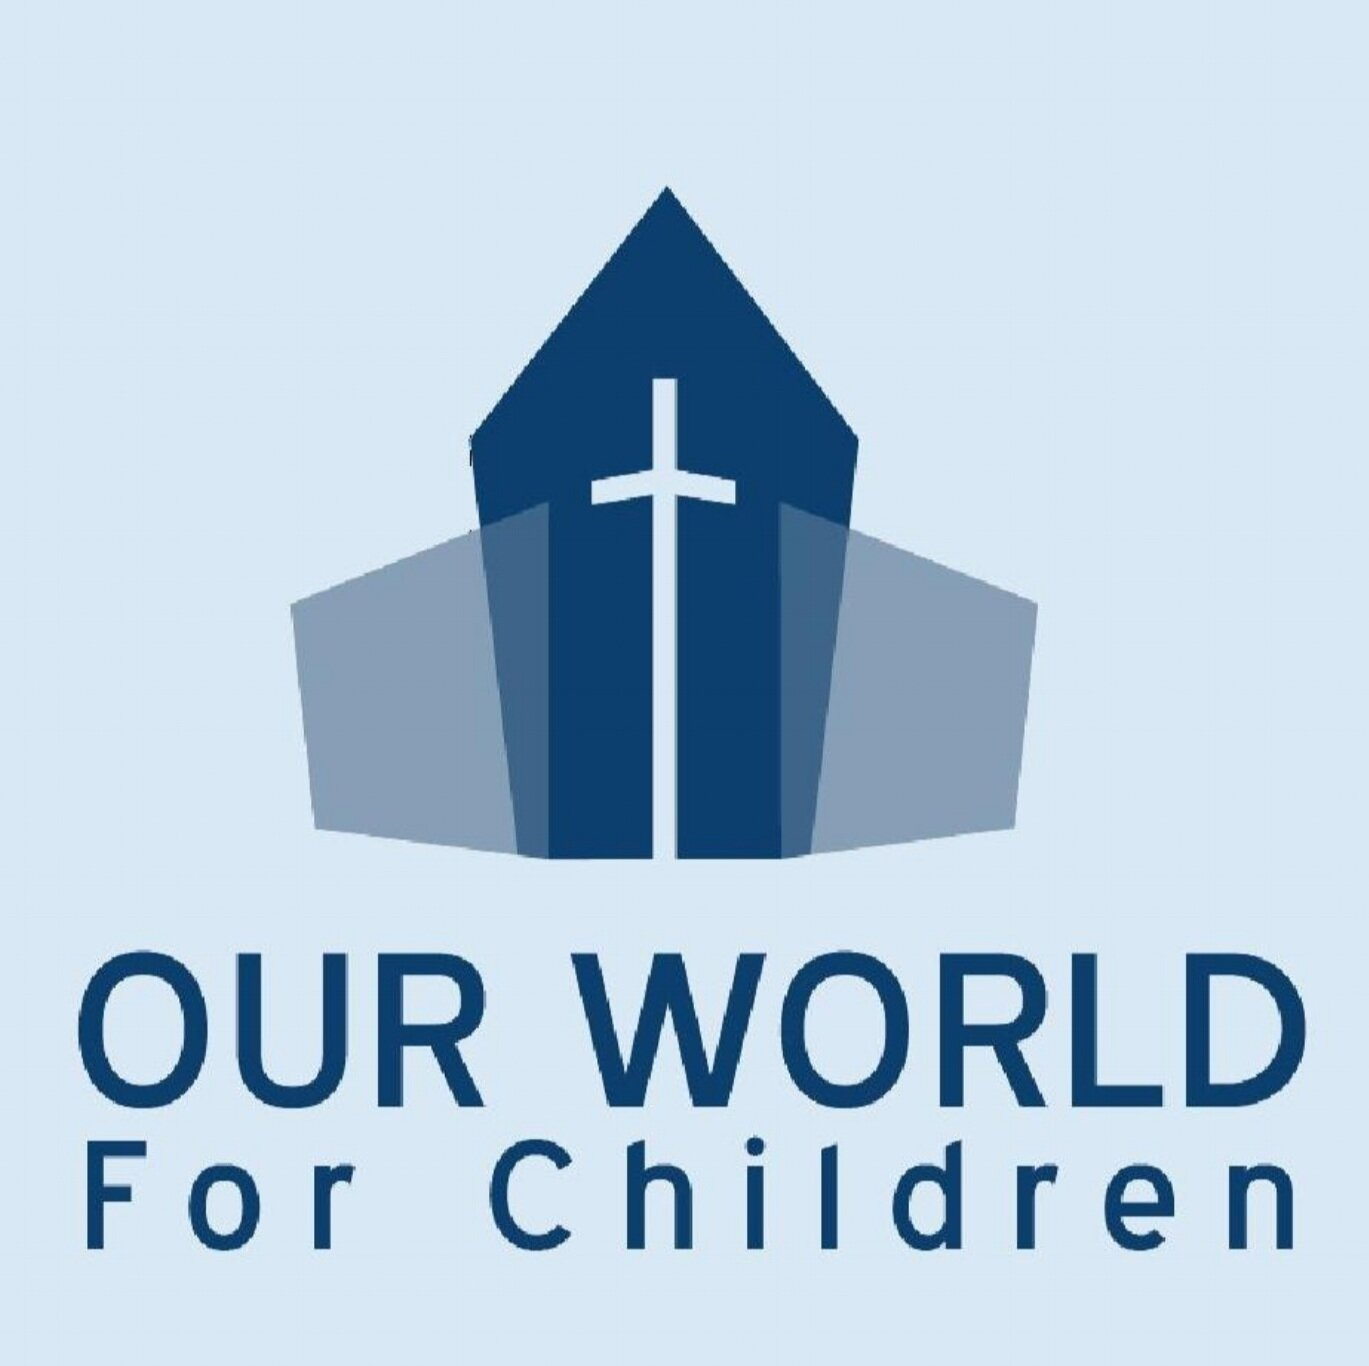 Our World for Children